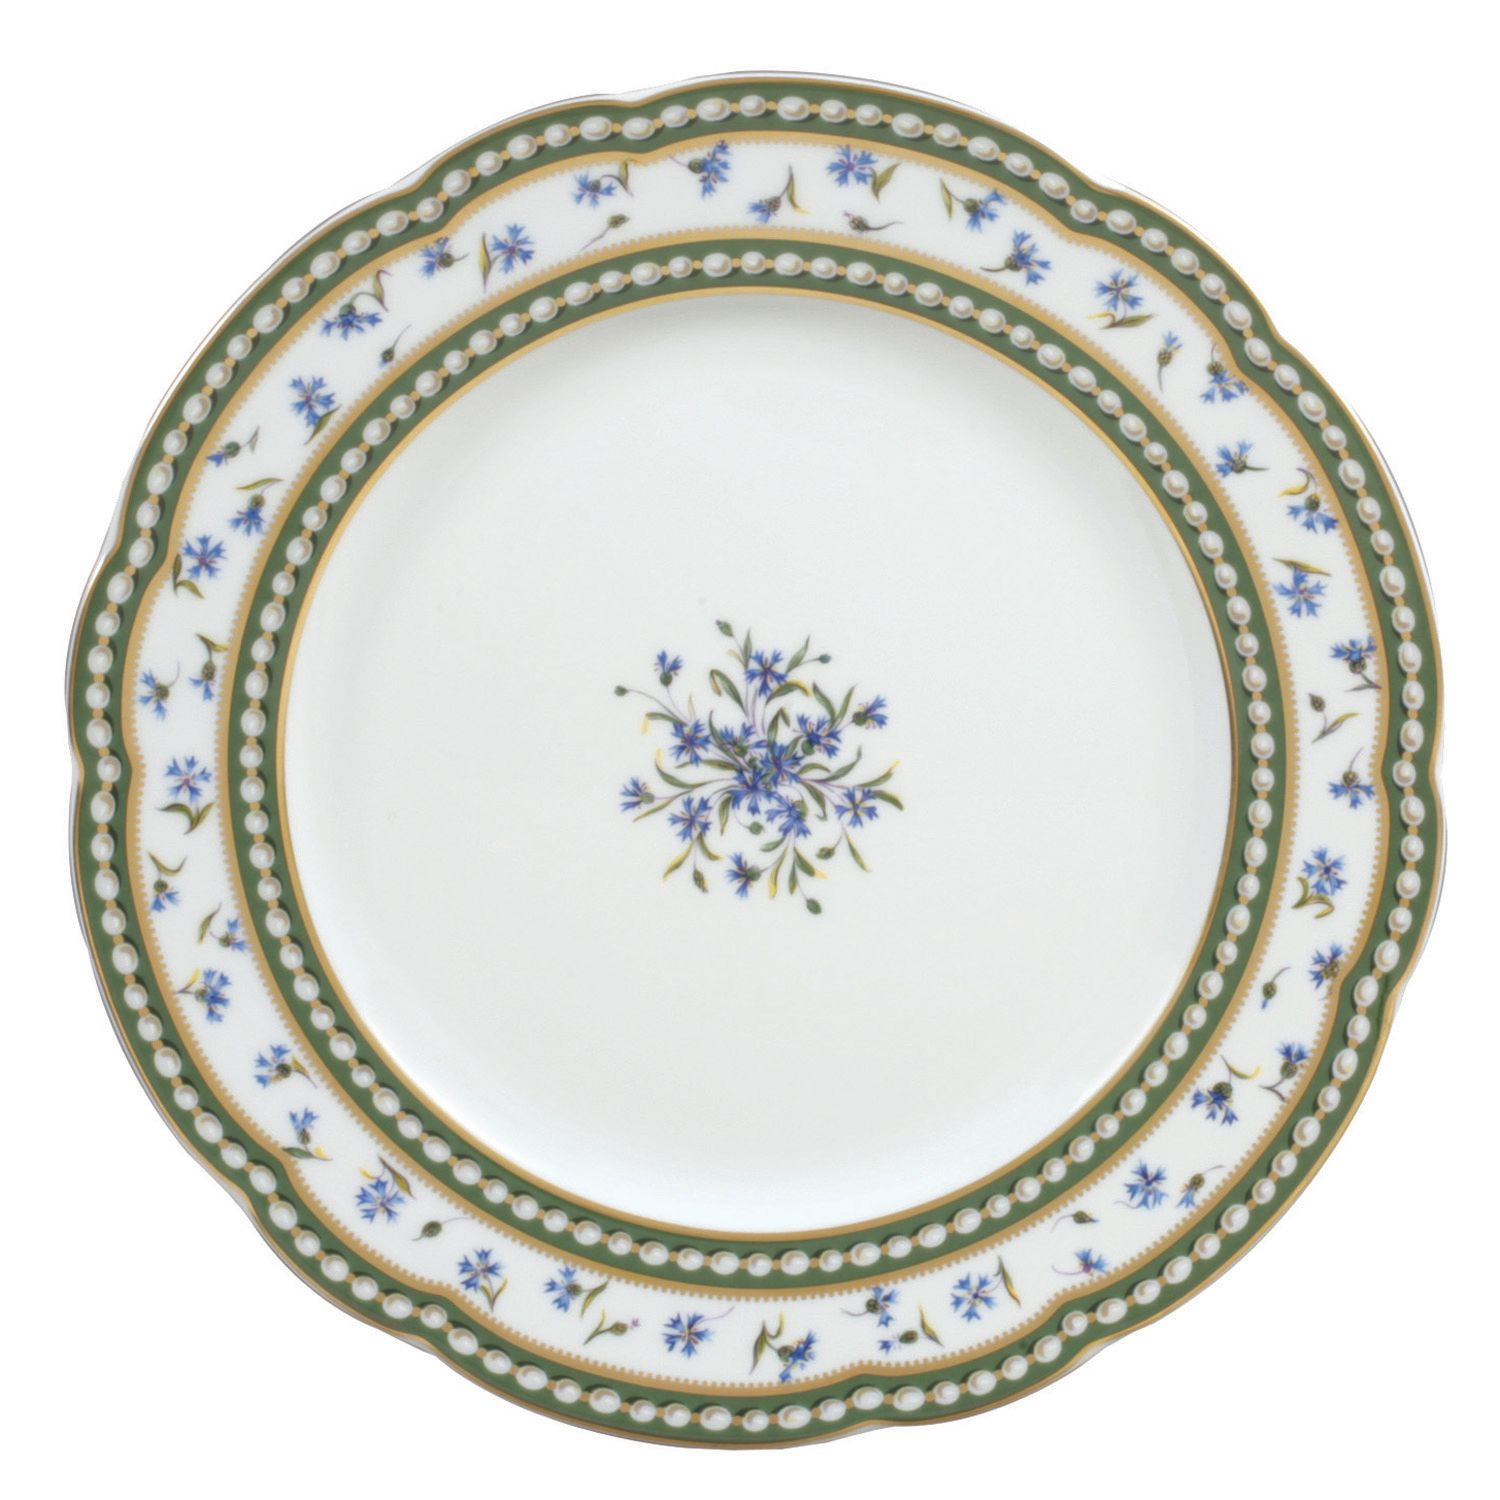 Limoges China Patterns Gold Trim Awesome Decorating Ideas